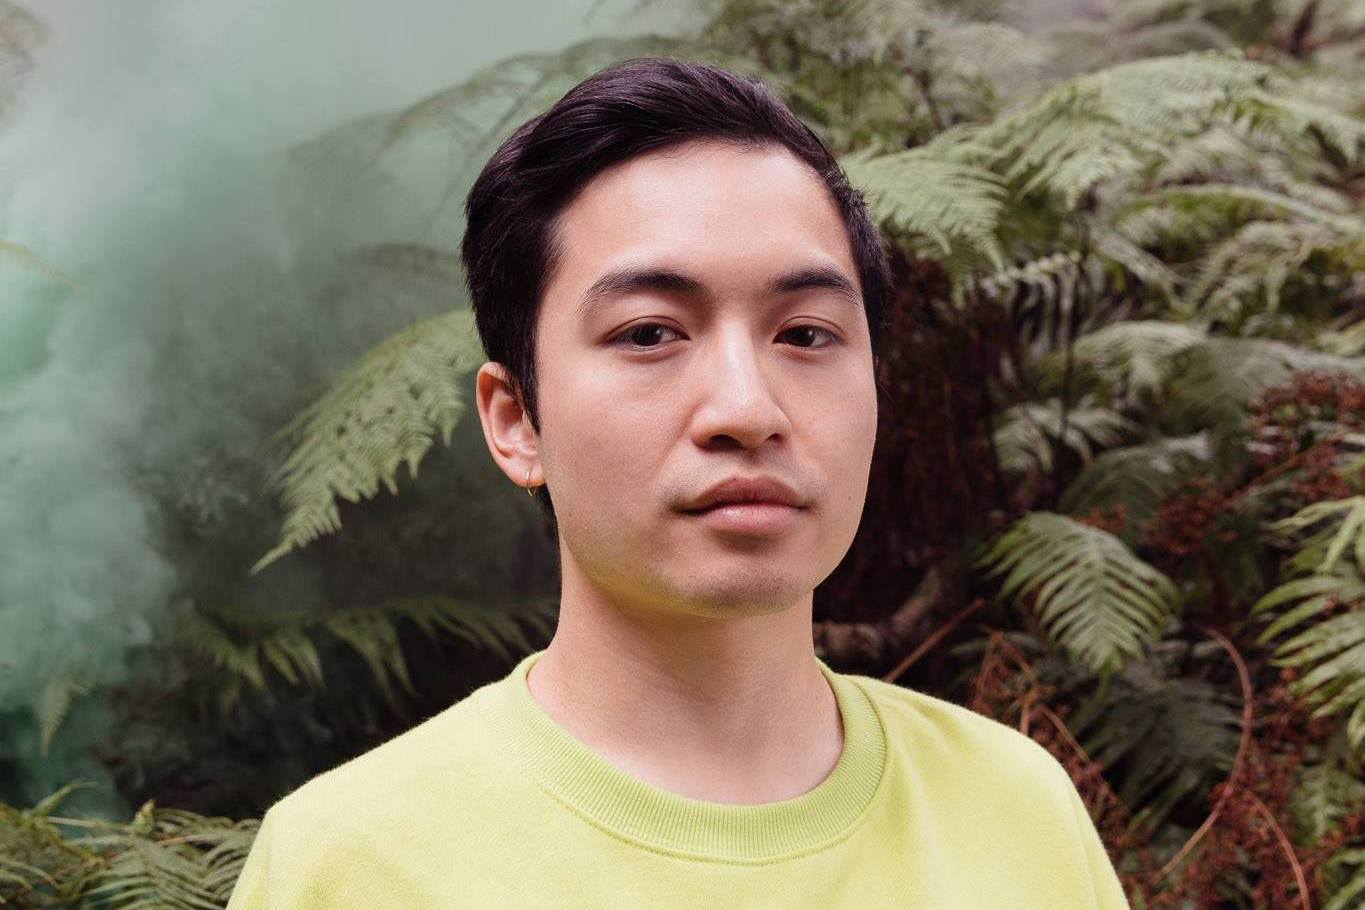 Tzekin   Tzekin (fka V Kim) makes R&B that dissects K-pop, Hong Kong ballads, improvisational ambient music and nostalgic Asian trance. He is a composer, DJ, curator, and co-founder of pan-Asian collective Eternal Dragonz.